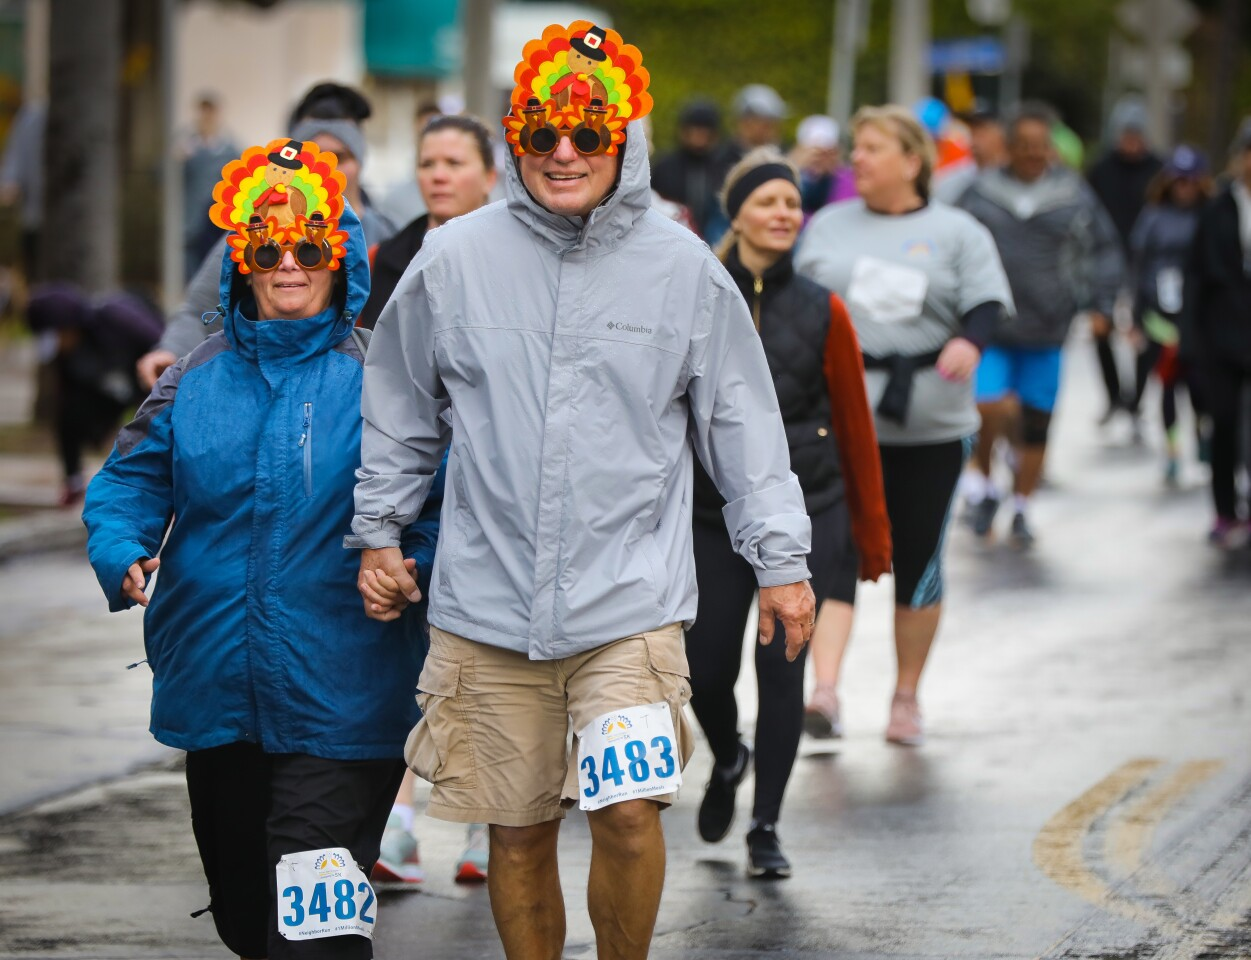 Sporadic rain showers didn't stop Carla Scott, left, and her husband Doug Scott, right, who were two of the thousands who participated in the 18th annual Father Joe's Villages Thanksgiving Day 5K in Balboa Park, November 28, 2019, in San Diego, California. The money raised helps support homeless efforts in San Diego. Although thousands participated, because of the rain, about 1,000 less ran and walked this year according to Deacon Jim Vargas, president and CEO of Father Joe's Villages.